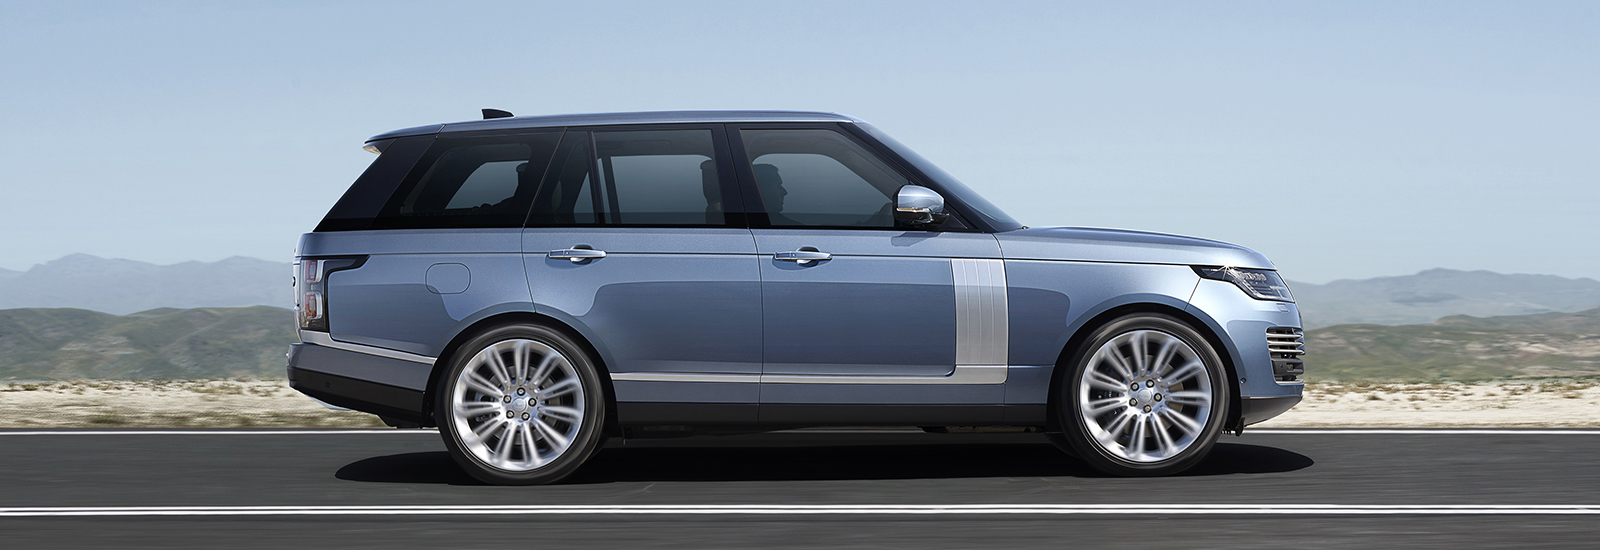 2018 land rover facelift. exellent rover click u0027loginu0027 in the toprighthand corner to sign up and configure a new  car or browse our extensive range of new nearly prereg stock cars inside 2018 land rover facelift